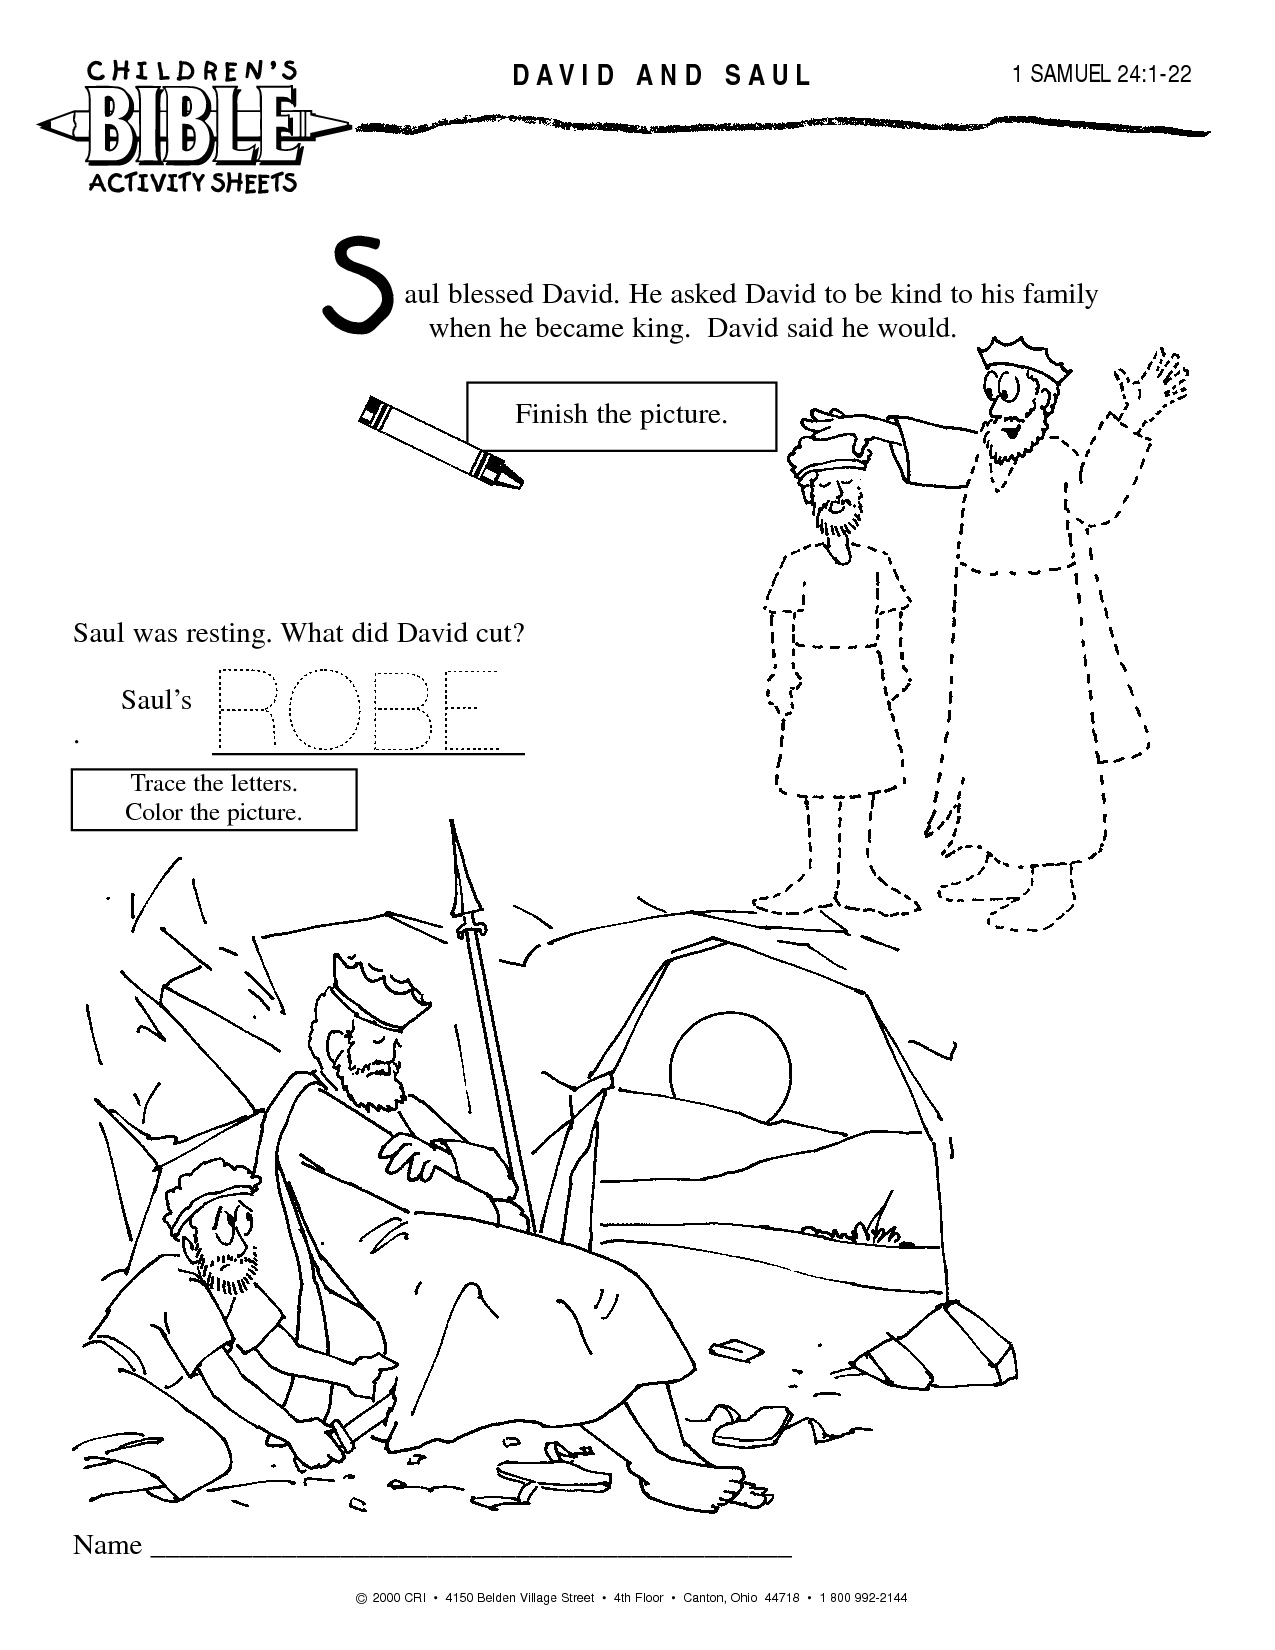 Childrens coloring sheet of saul and ananias - 8 Pics Of 1 Samuel 24 Coloring Pages King David And Saul